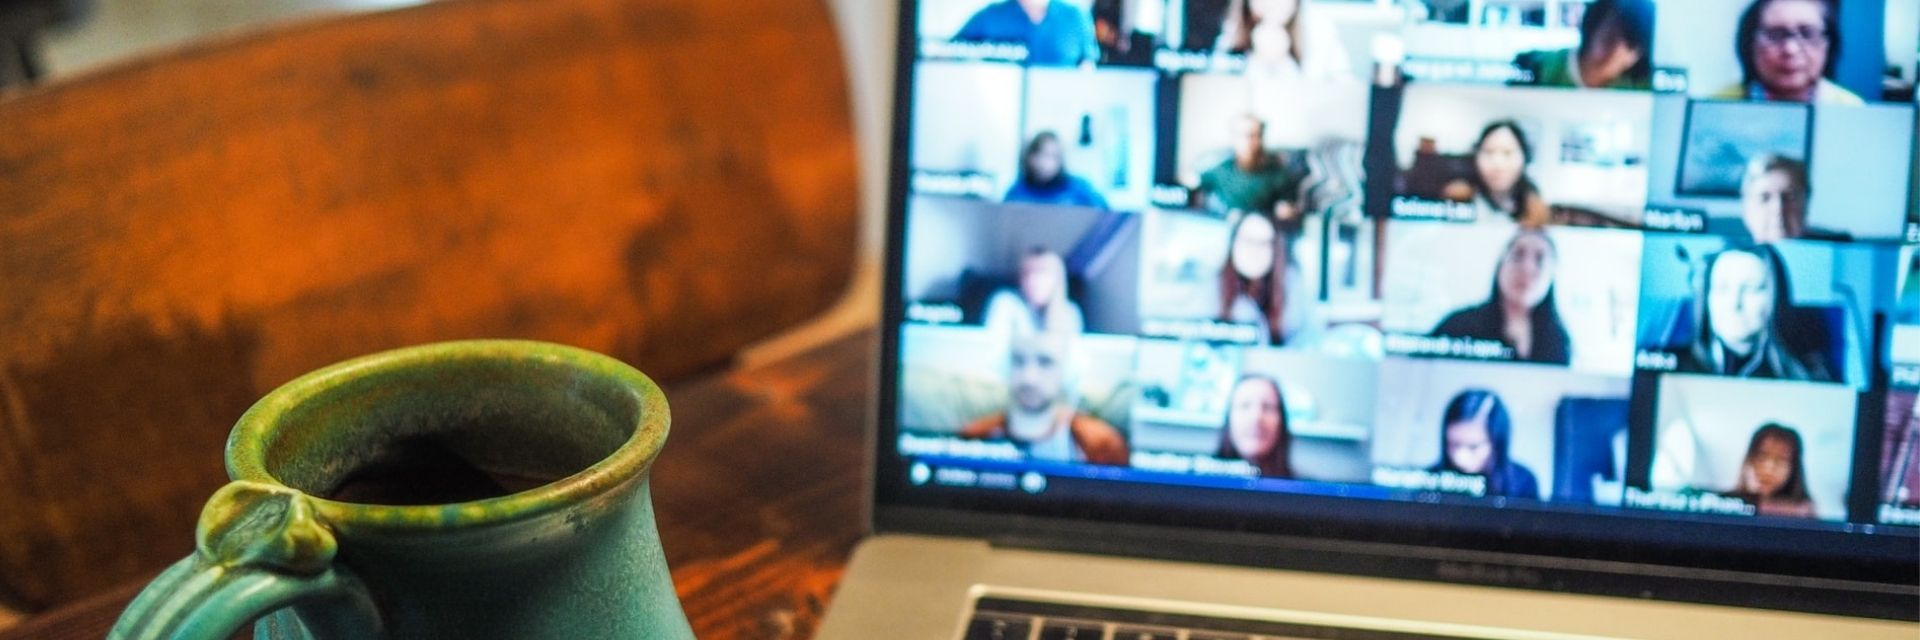 Remote workers at an online meeting